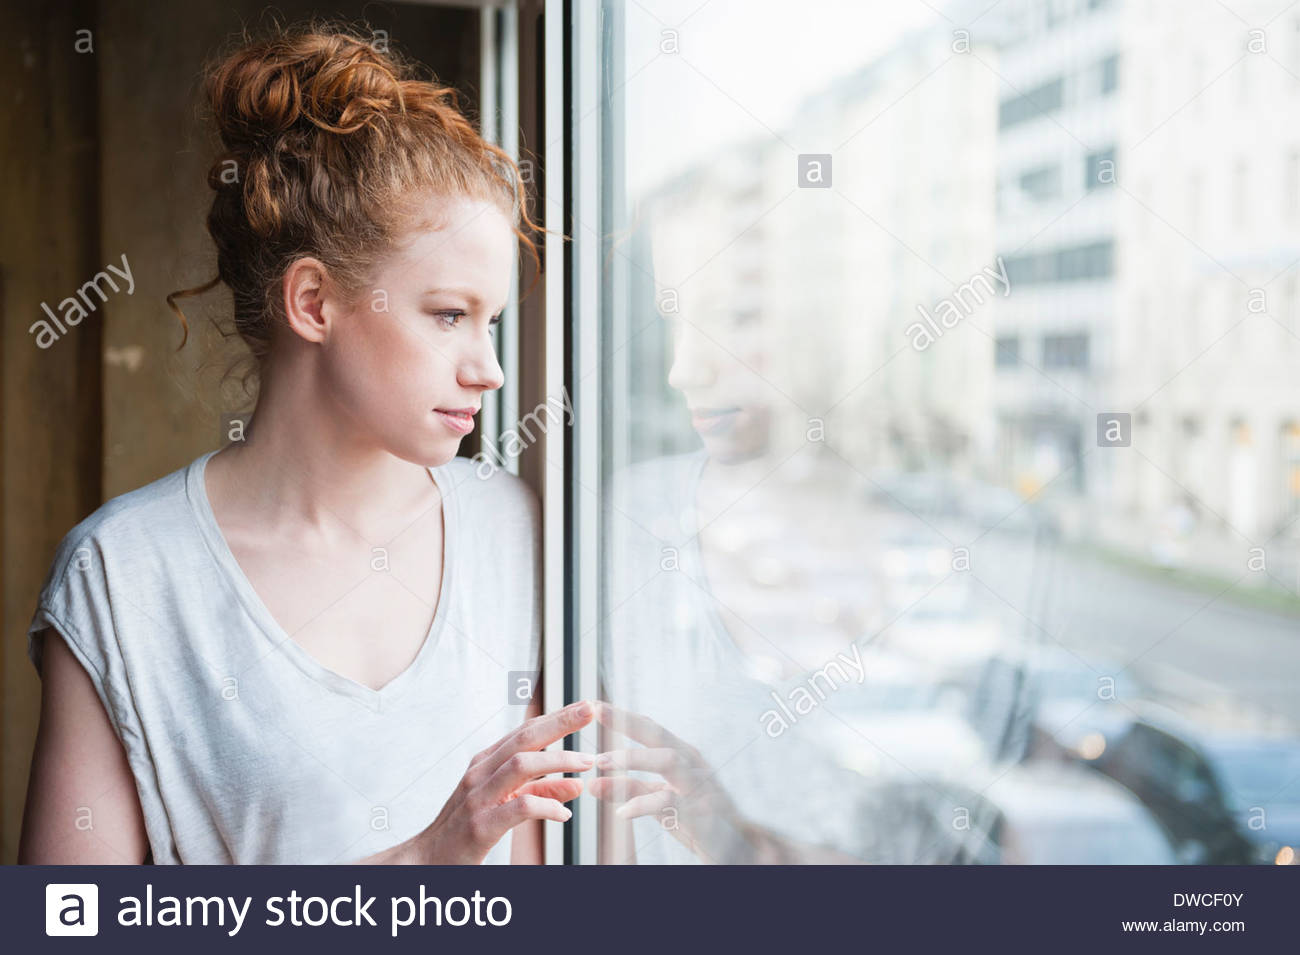 Young woman looking out of window at street - Stock Image